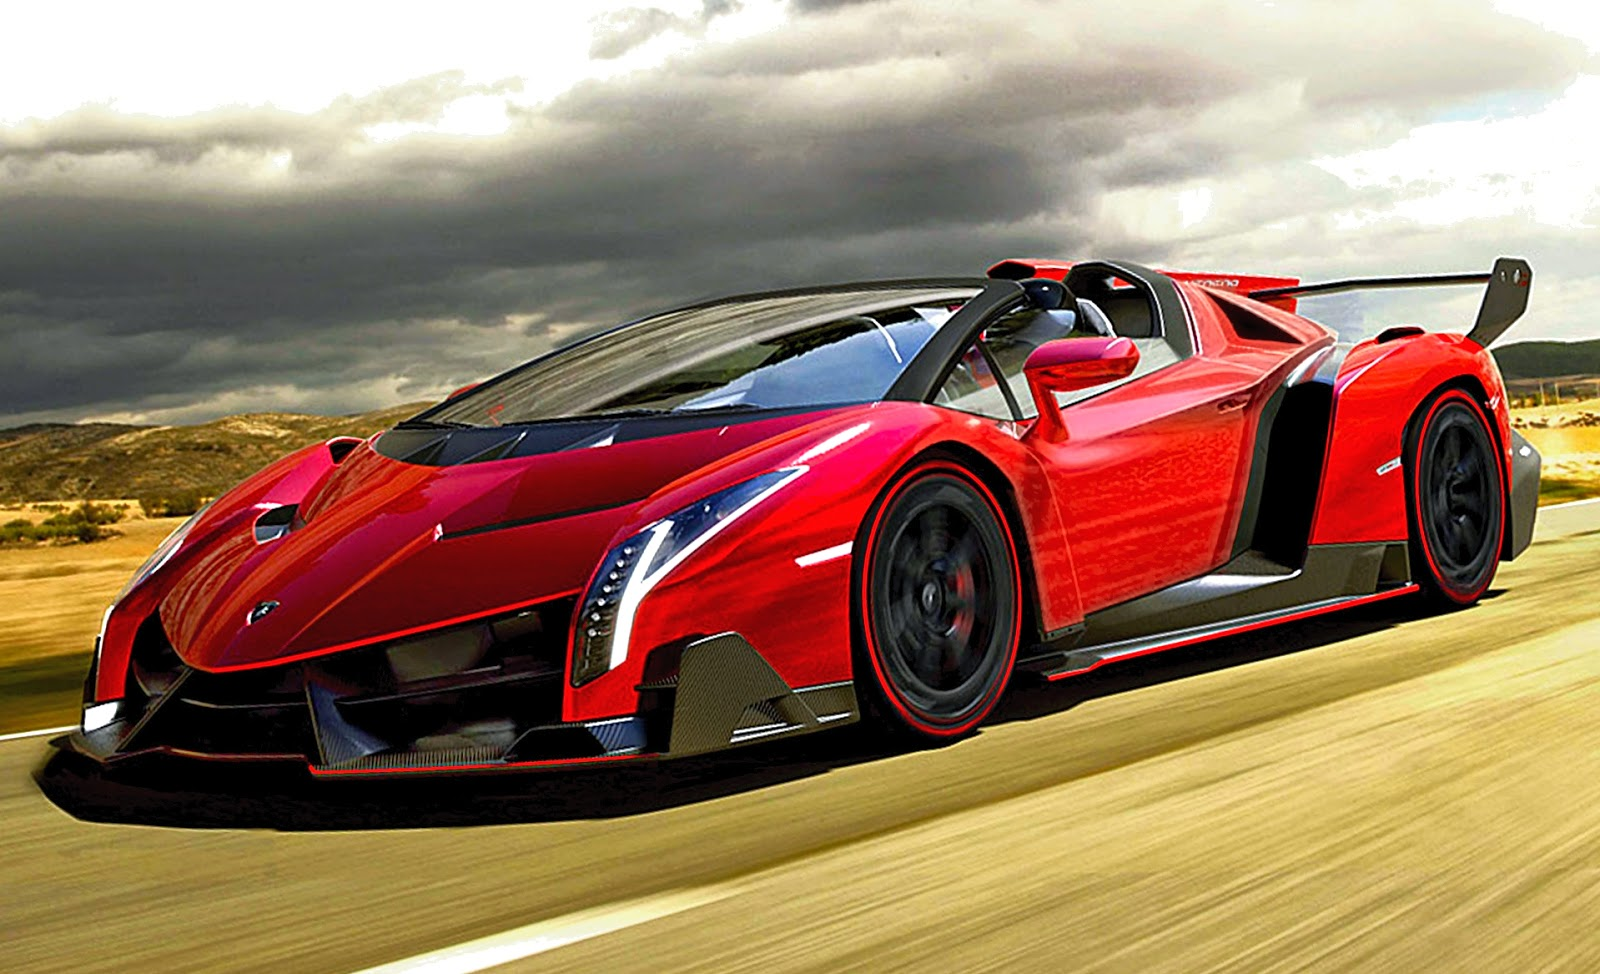 Blok888: Top 10 Most Expensive Cars in the world 2014